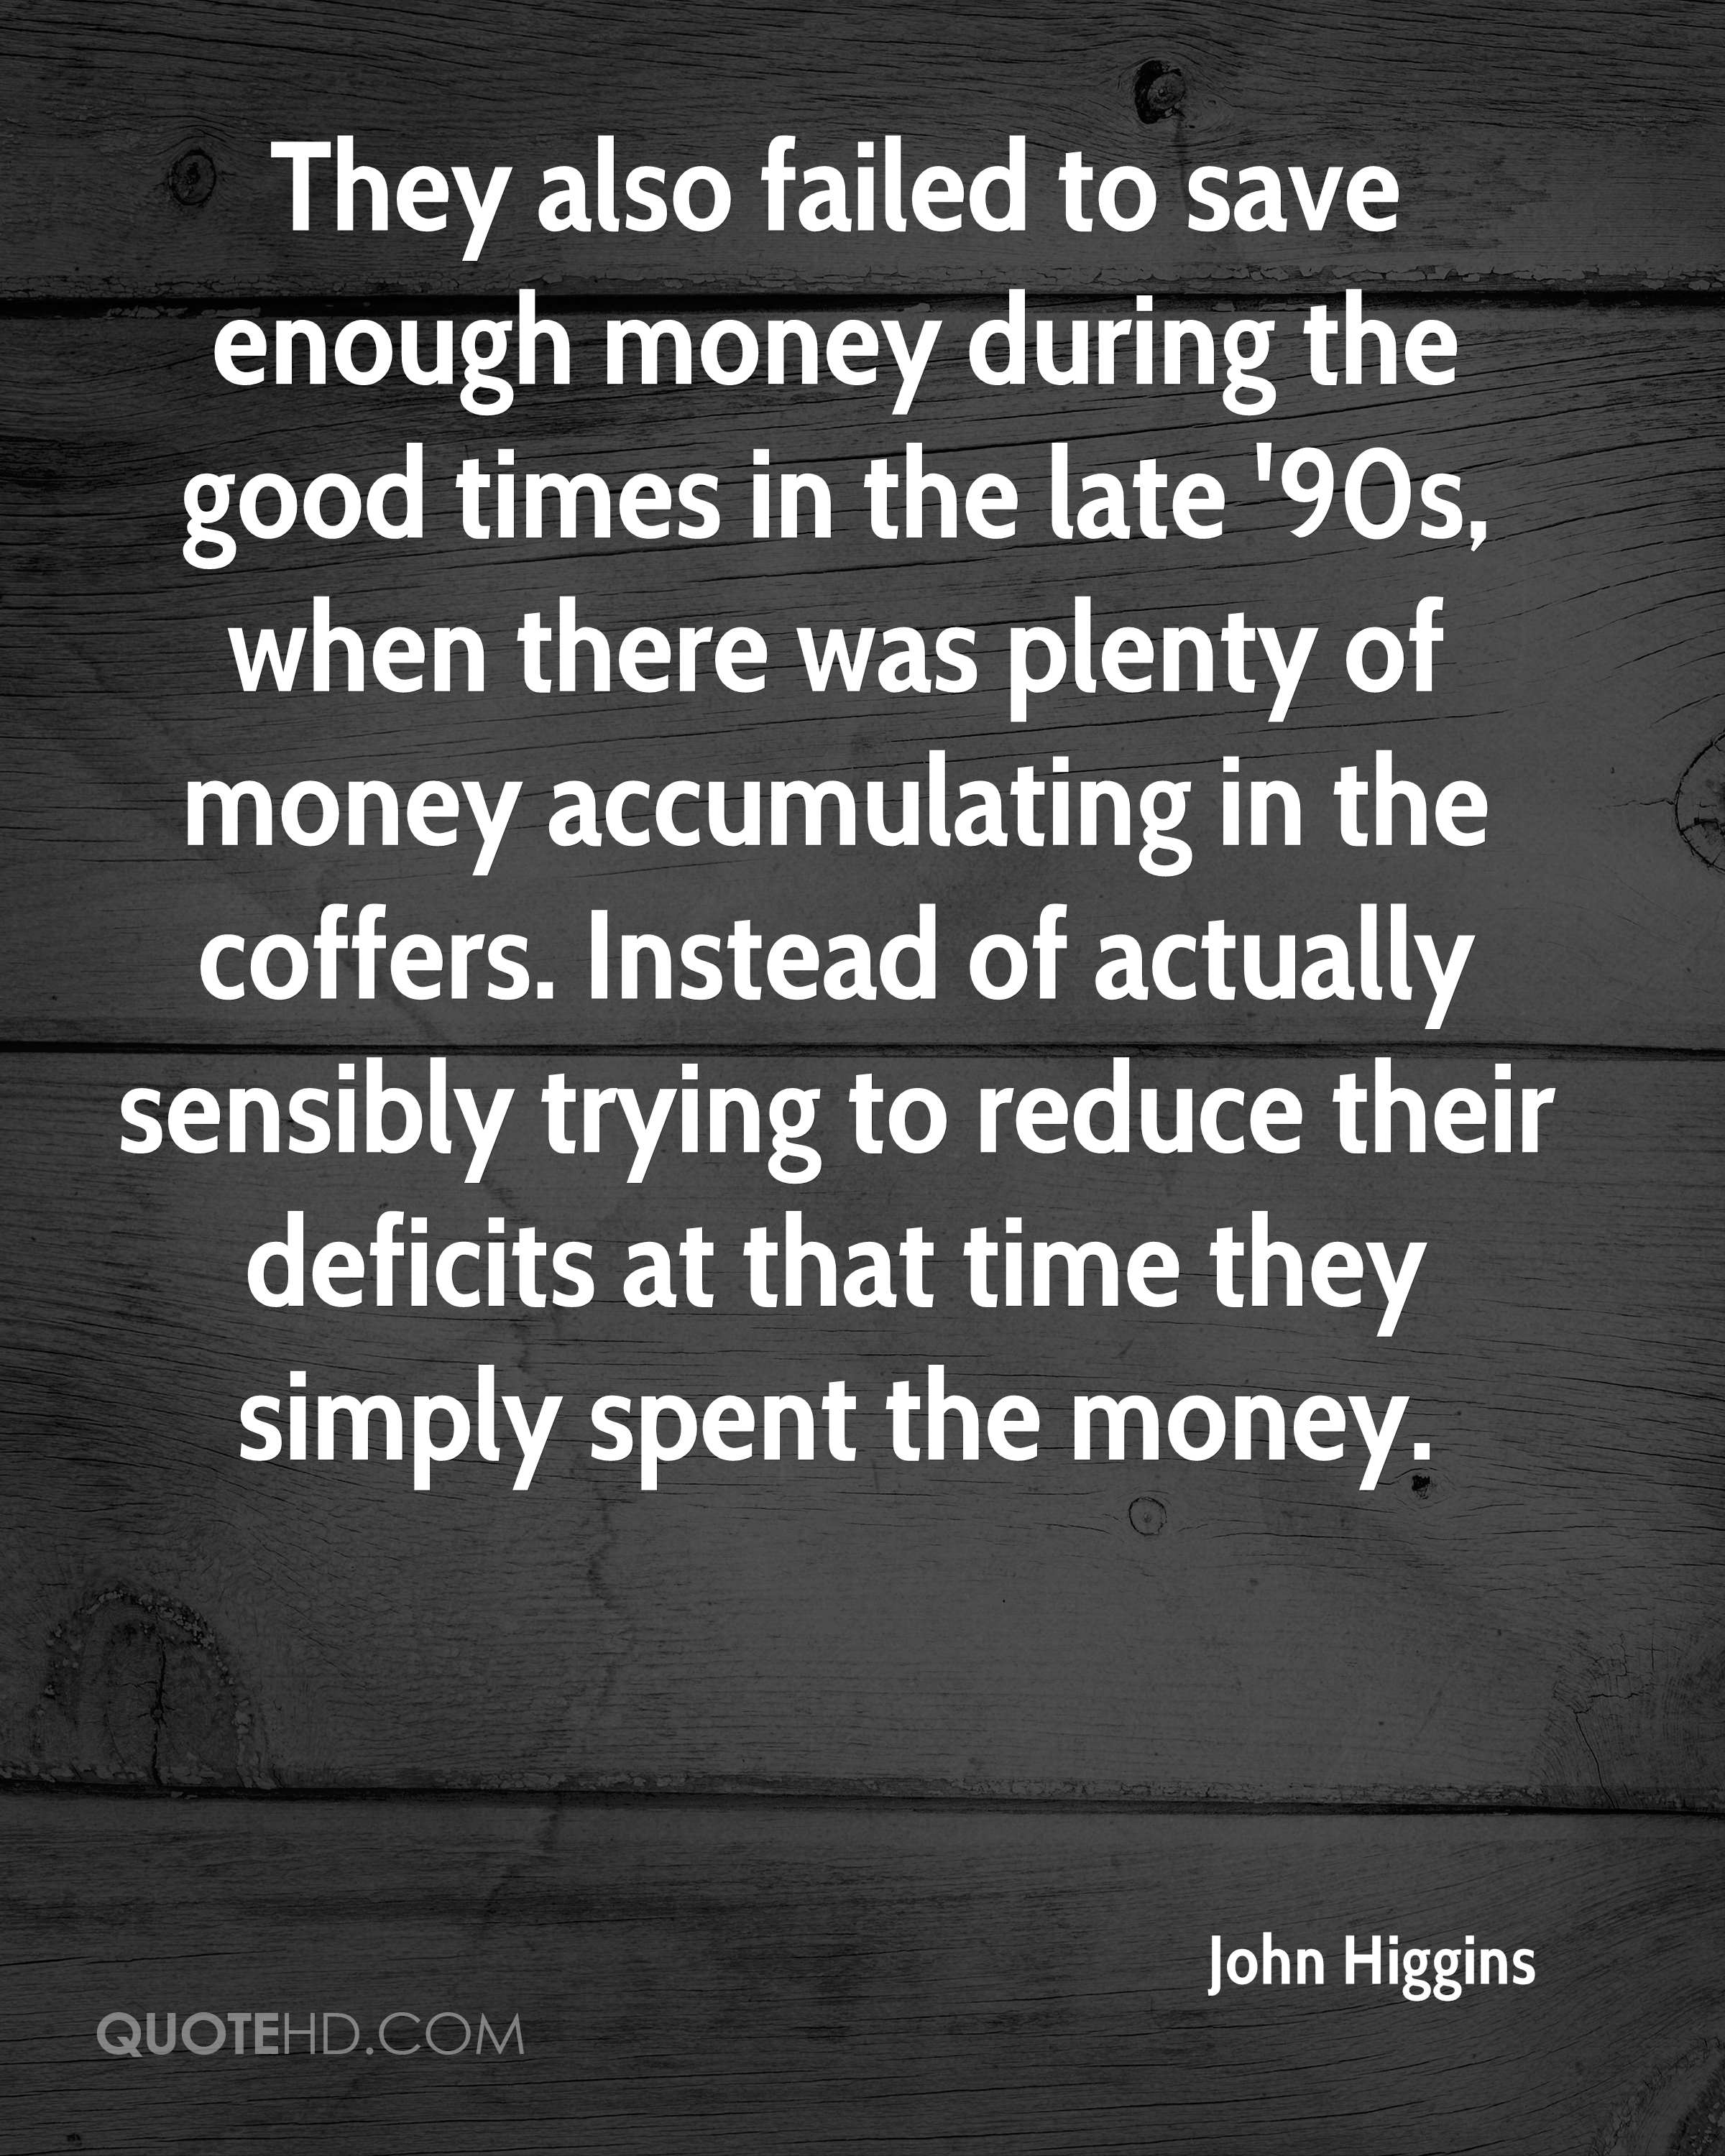 They also failed to save enough money during the good times in the late '90s, when there was plenty of money accumulating in the coffers. Instead of actually sensibly trying to reduce their deficits at that time they simply spent the money.